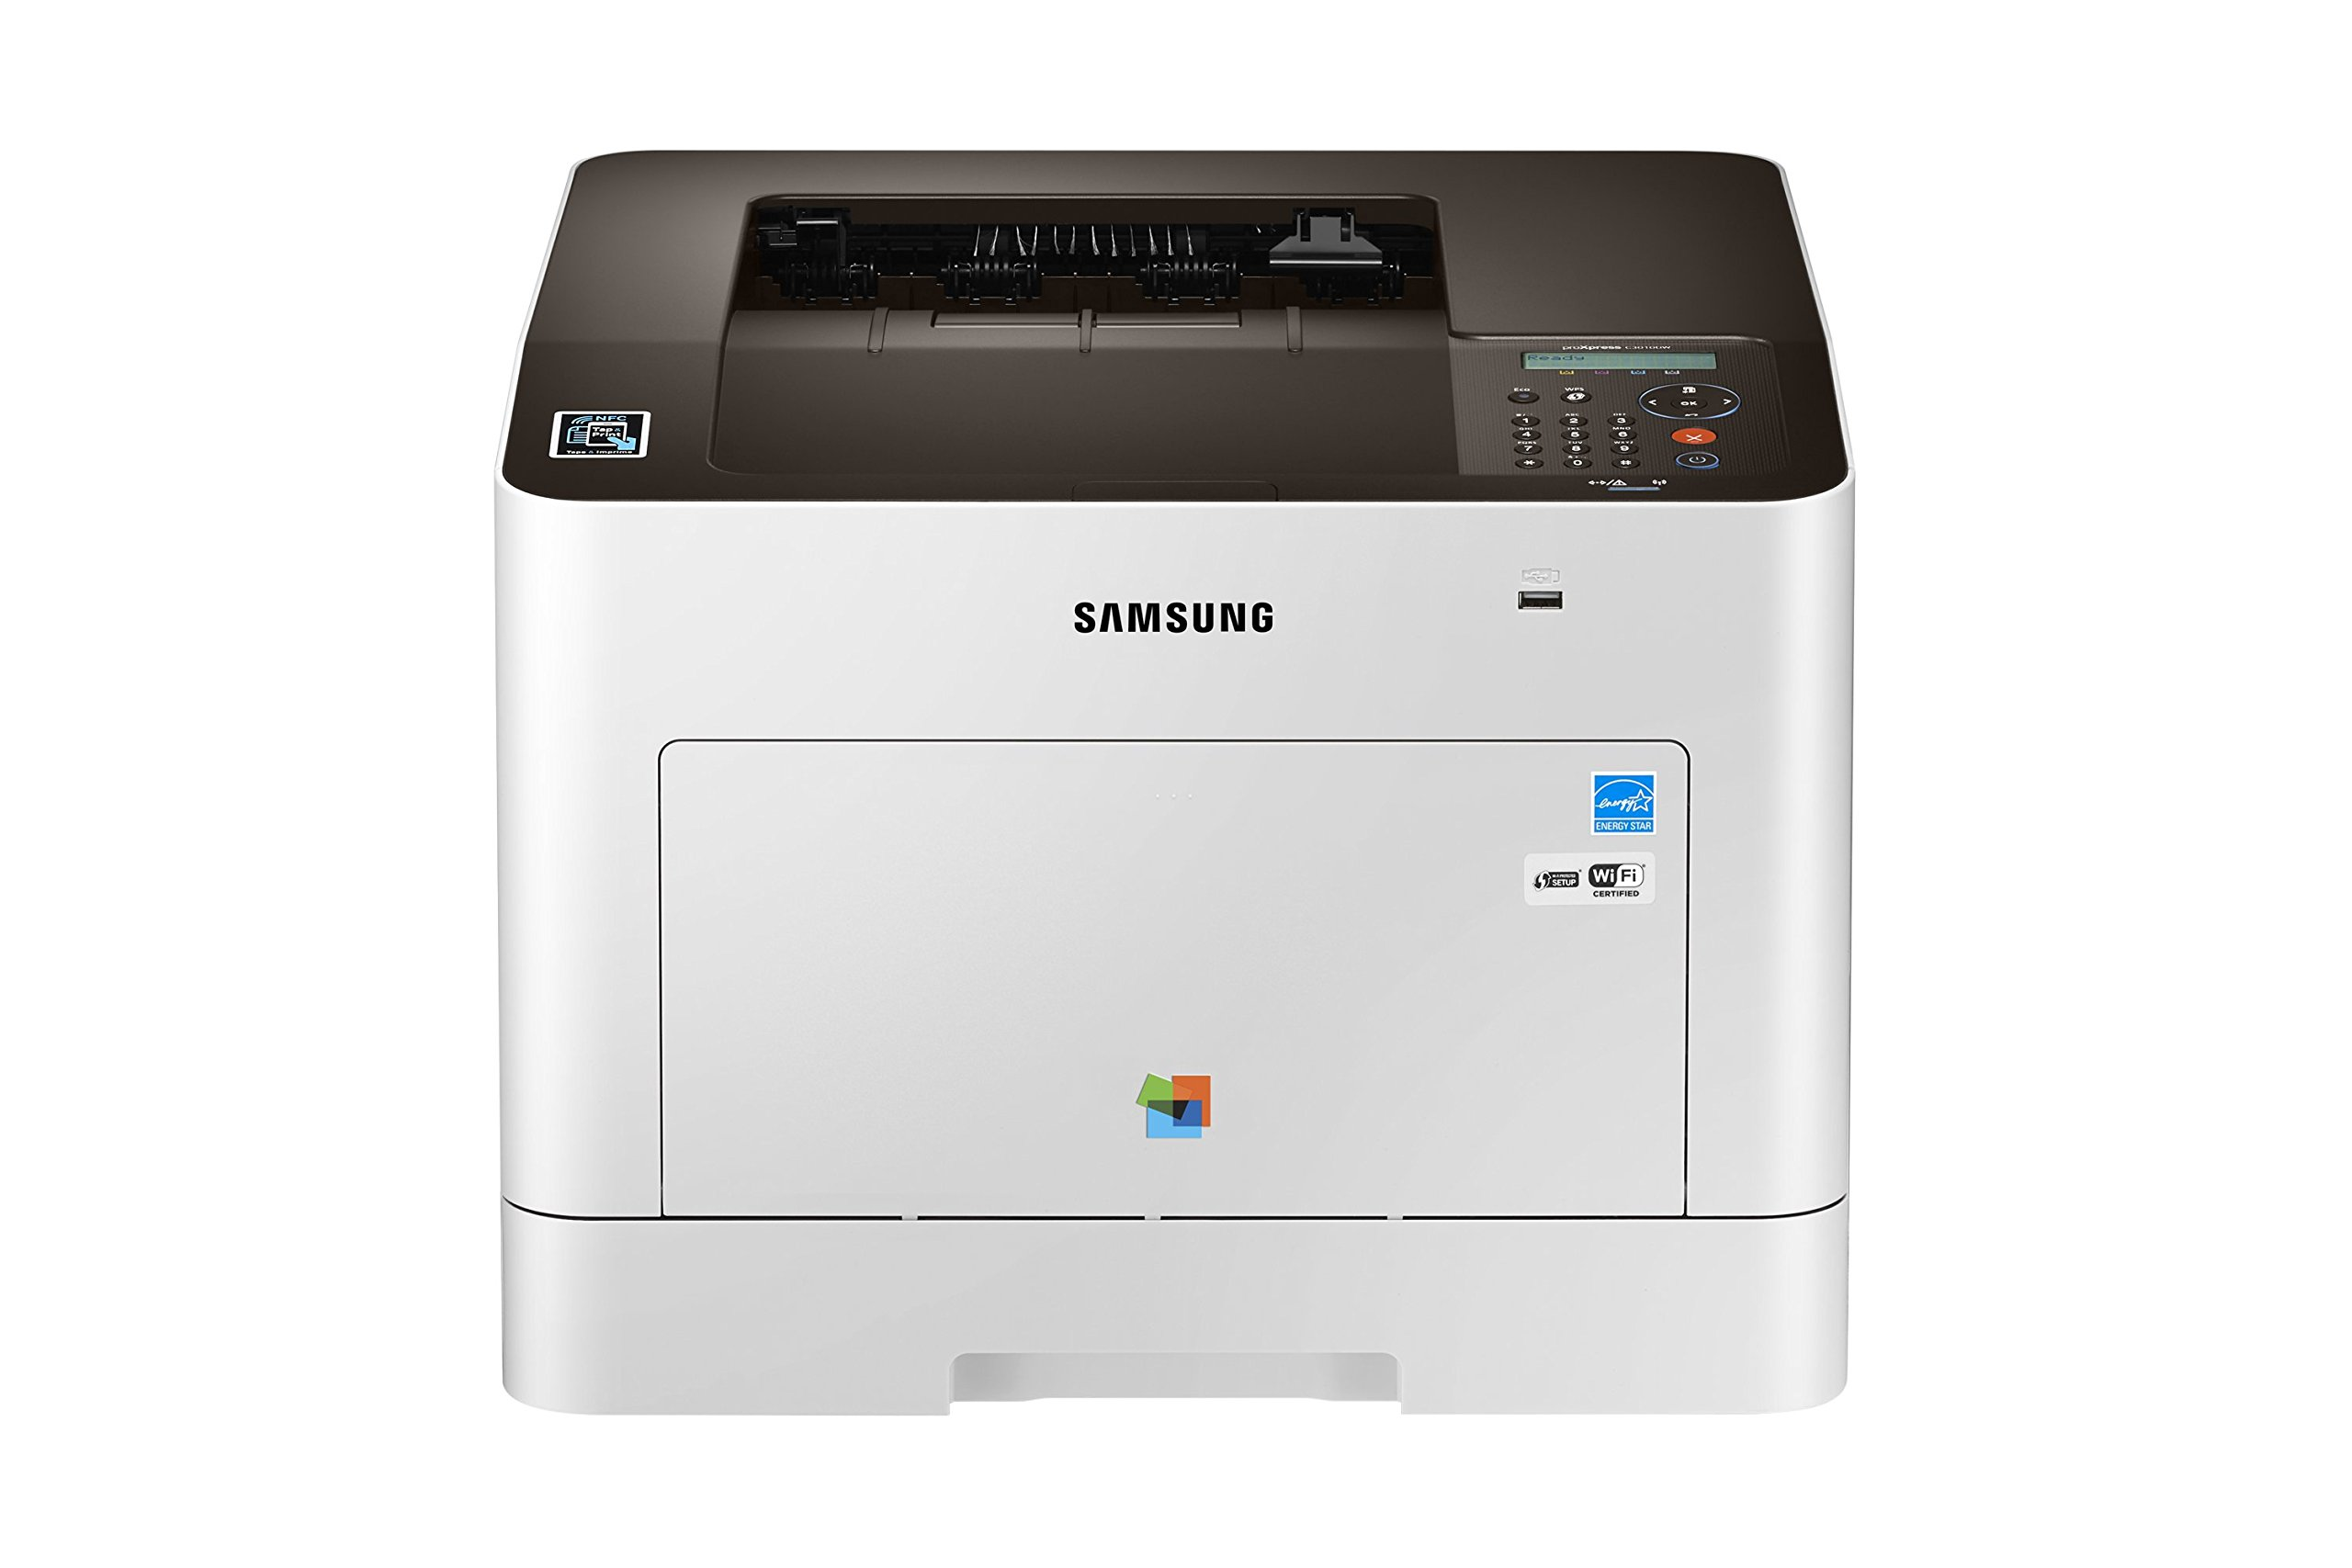 Samsung Electronics SL-C3010DW Wireless Color Printer, Amazon Dash Replenishment Enabled